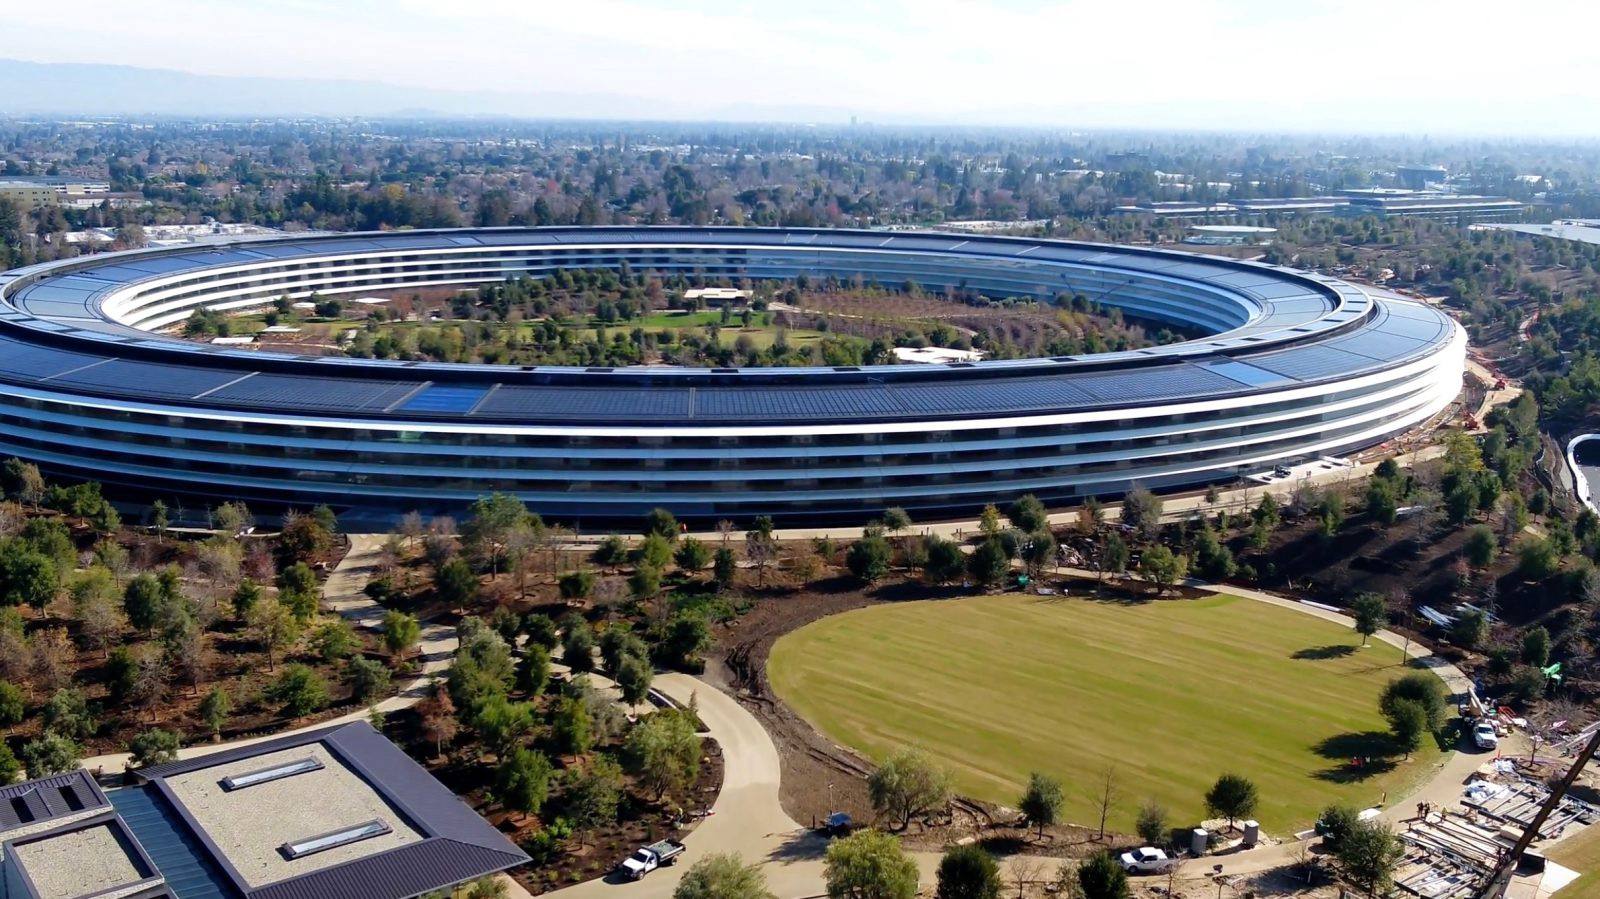 Apple park- Apple HeadQuarters  in California